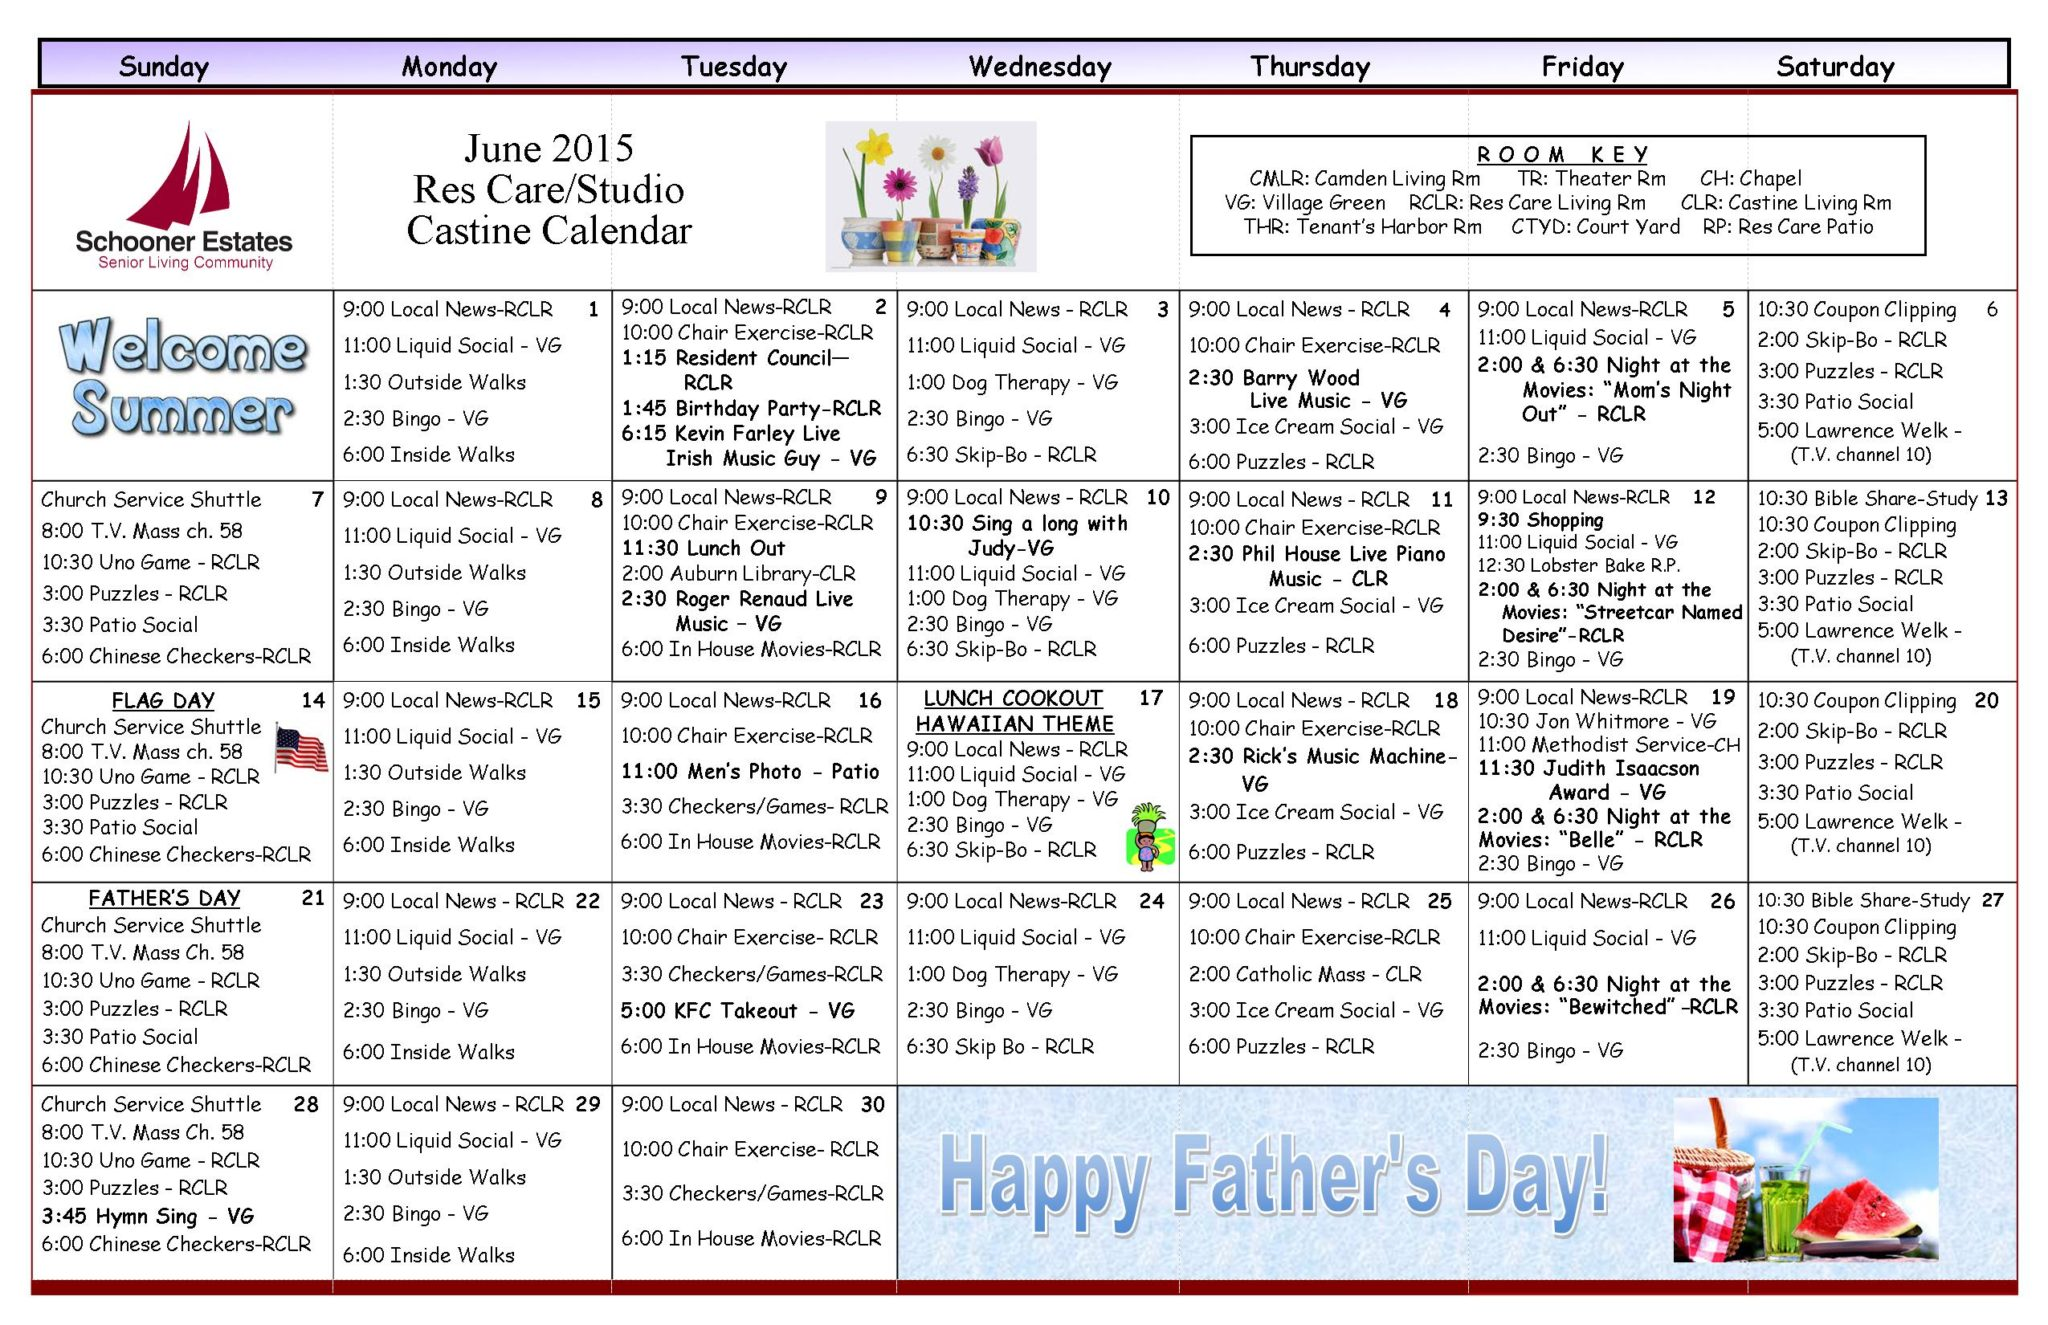 June 2015 Assisted Living/Residential Care Calendar